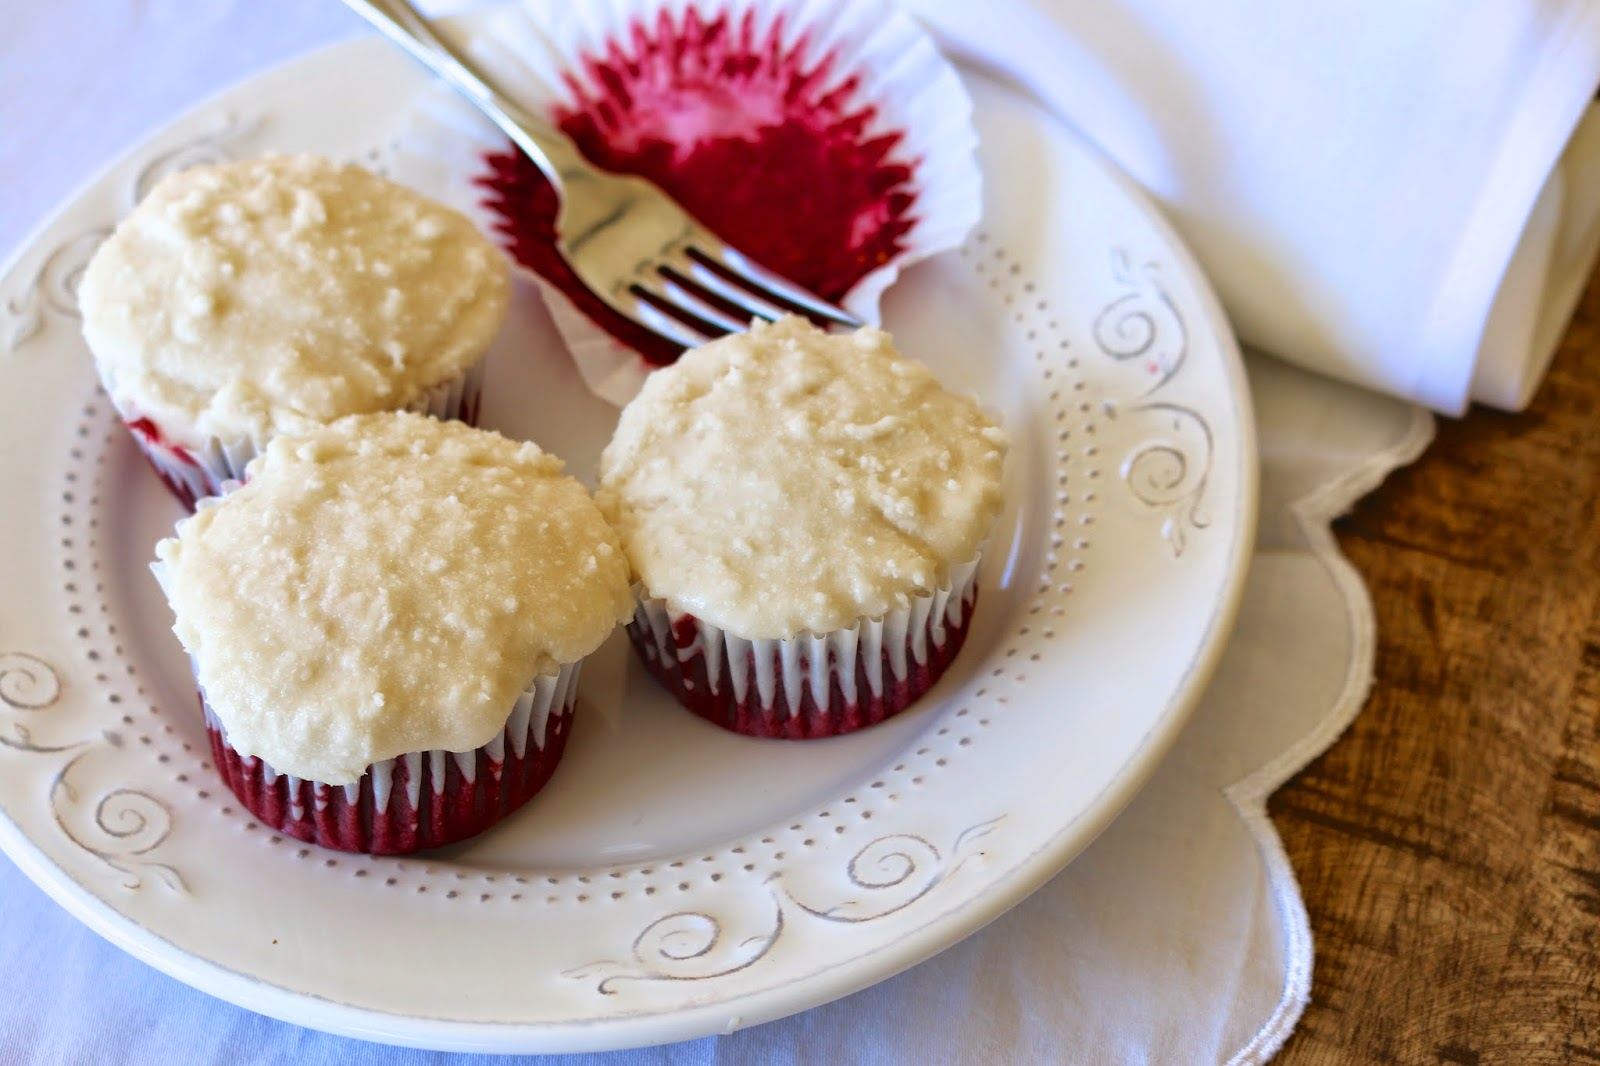 Vegan Vanilla Beet Cupcakes with Vegan Vanilla Coconut Frosting: Naturally colored with beets and only mildly sweet, these whole grain, plant-based cupcakes are certainly a reason to celebrate.